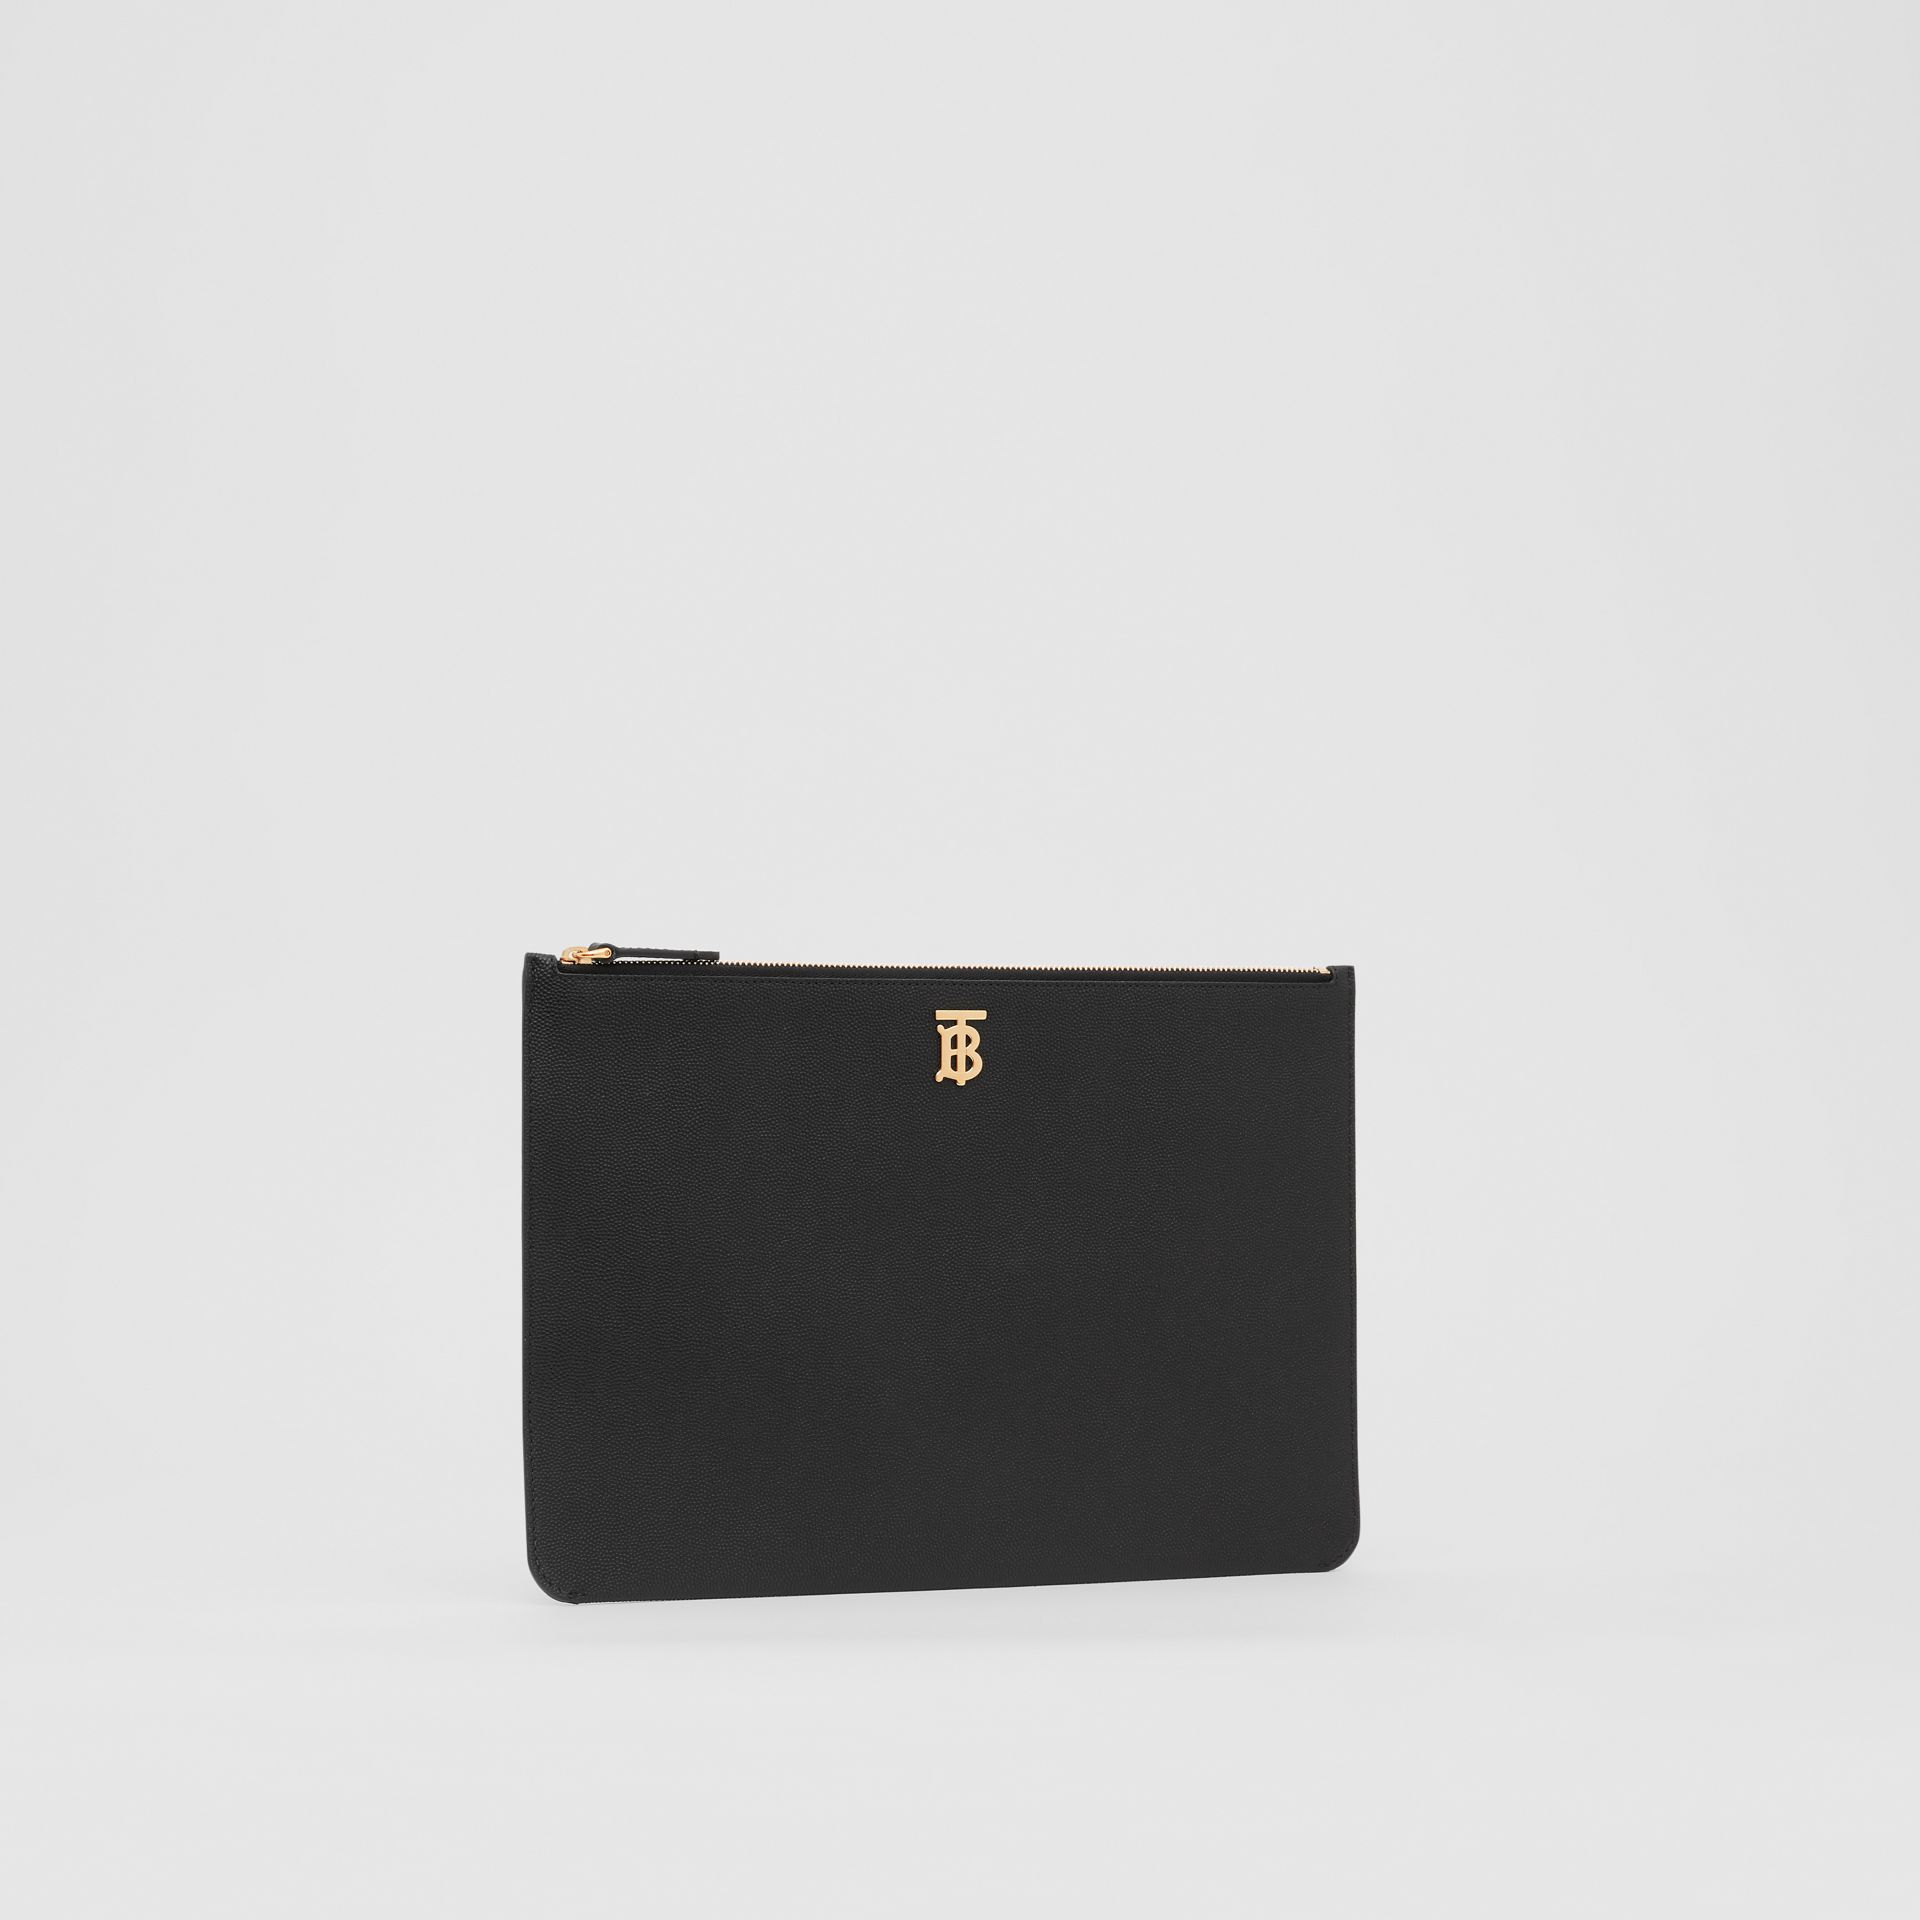 Monogram Motif Grainy Leather Pouch in Black - Women | Burberry - gallery image 5